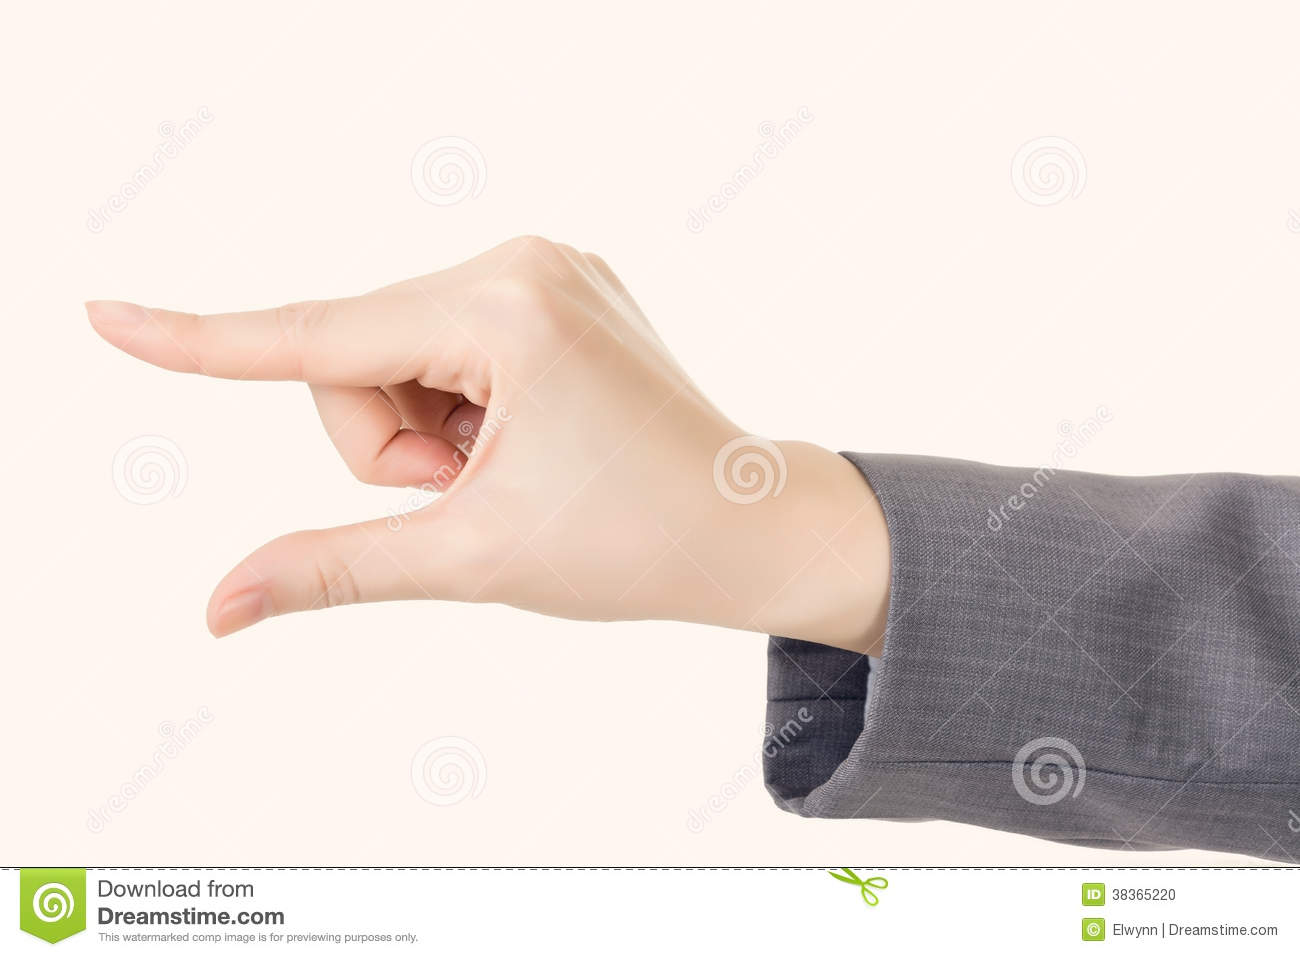 Business Woman's Hand Using Finger To Select Or Take Stock Photo ...: www.dreamstime.com/stock-photo-business-woman-s-hand-using-finger...